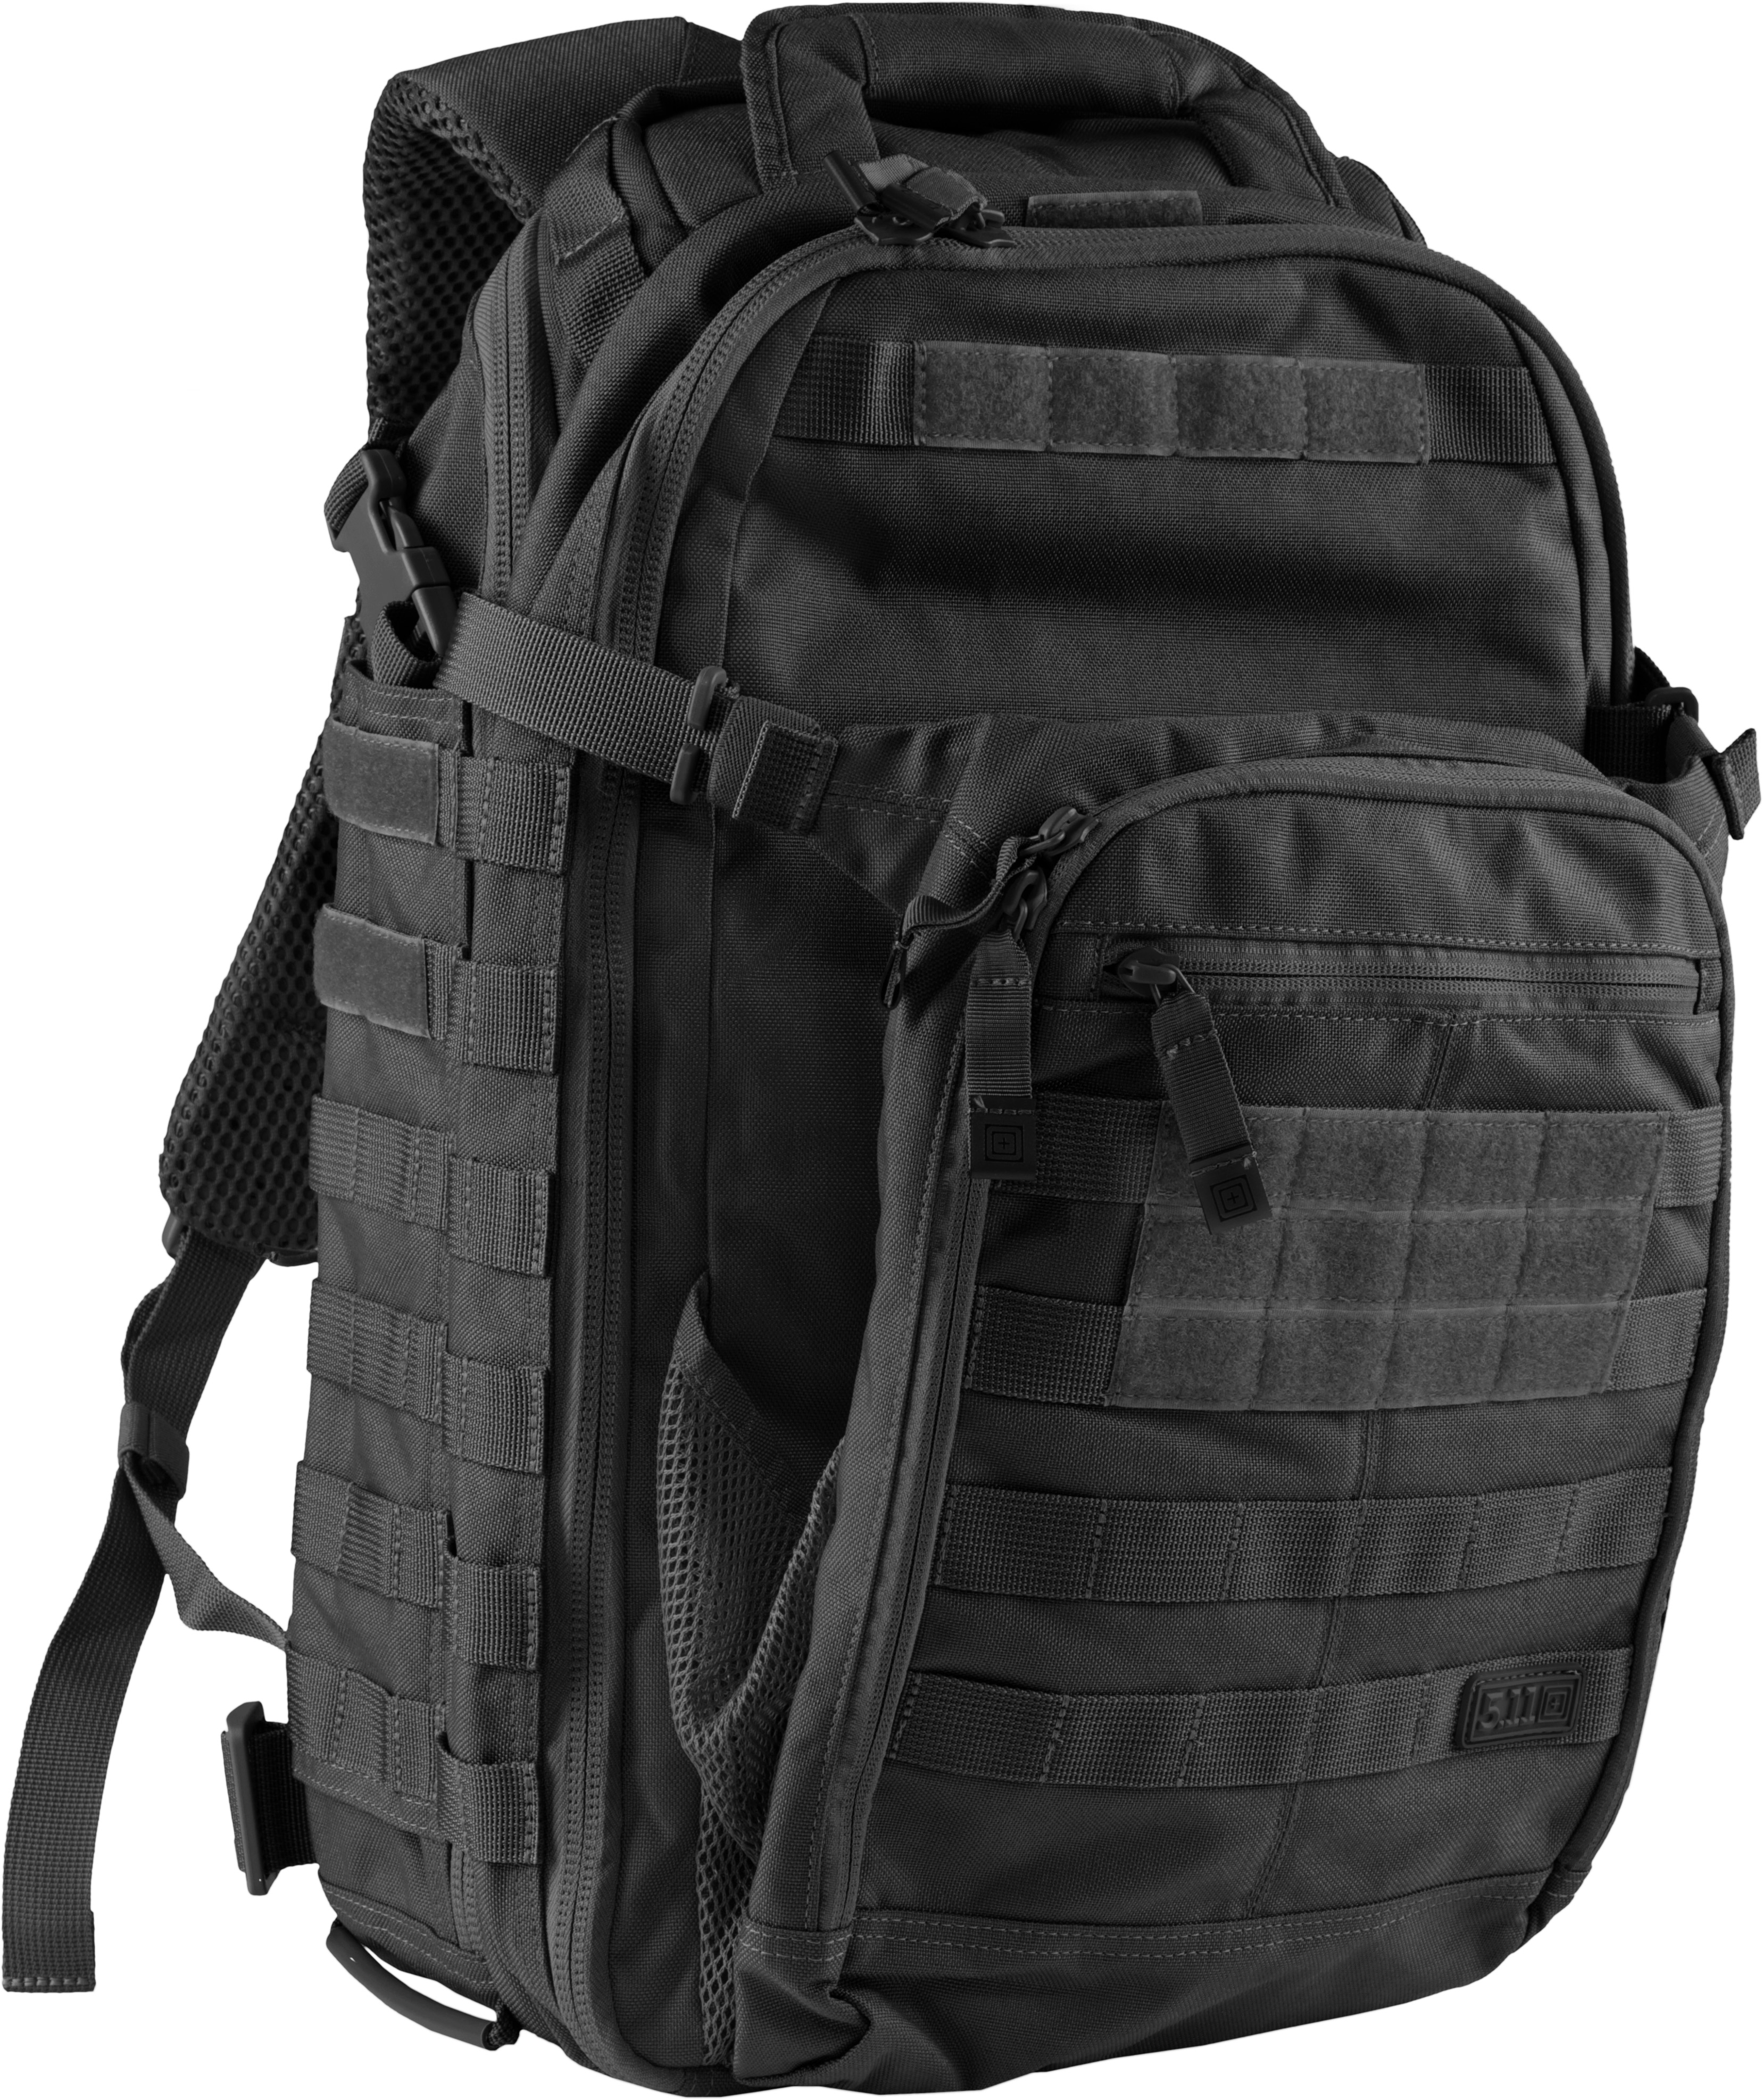 5.11 Tactical's All Hazards PrimeT Pack